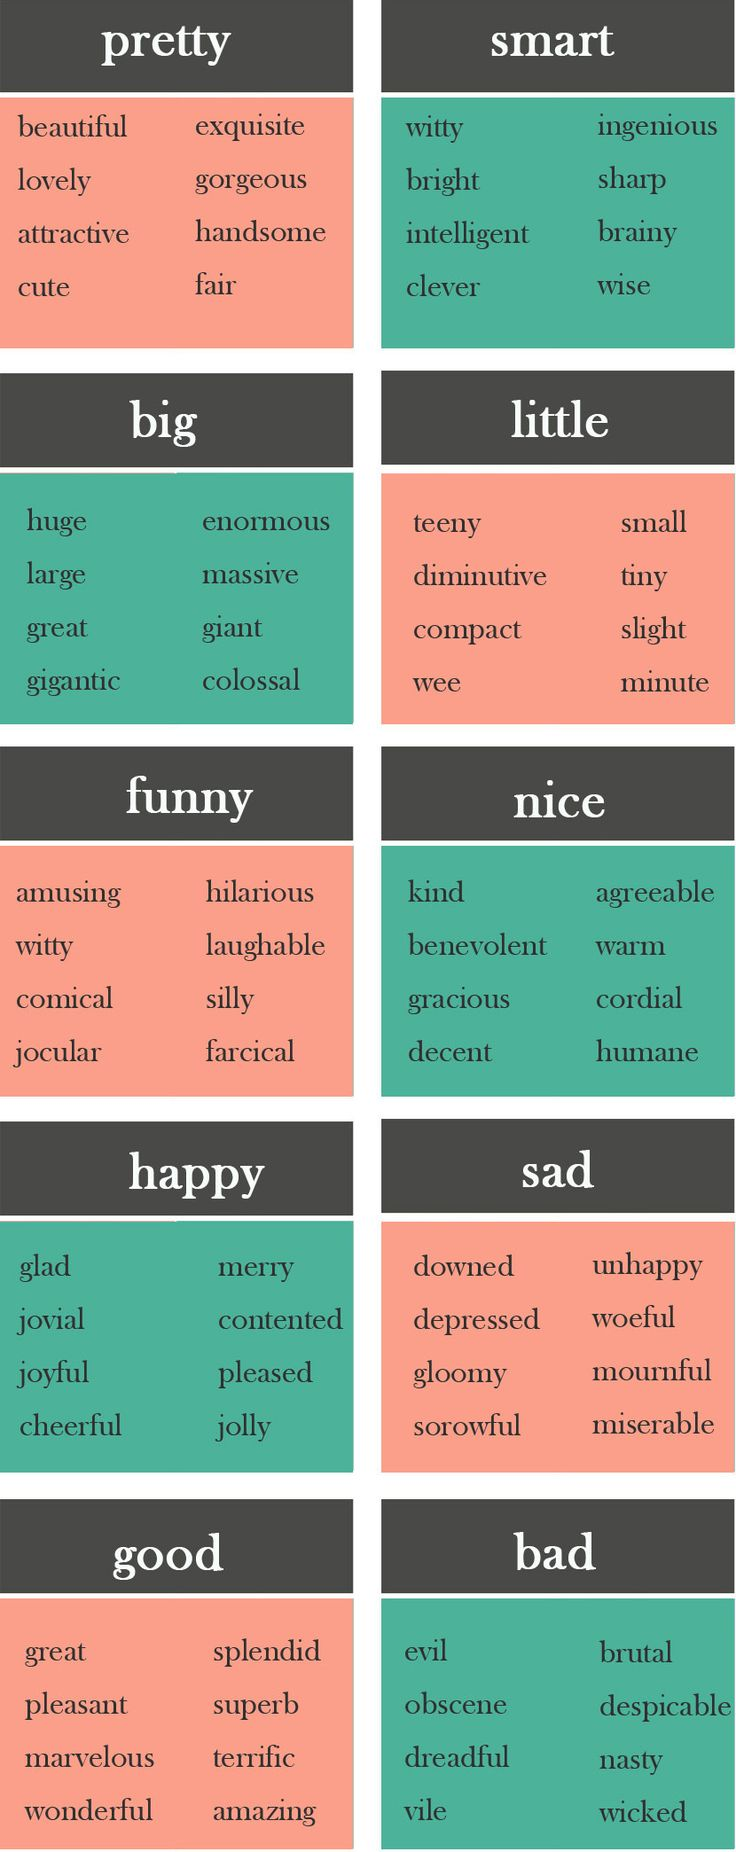 10 Boring Words and What to Use Instead - learn English,words,synonyms,english